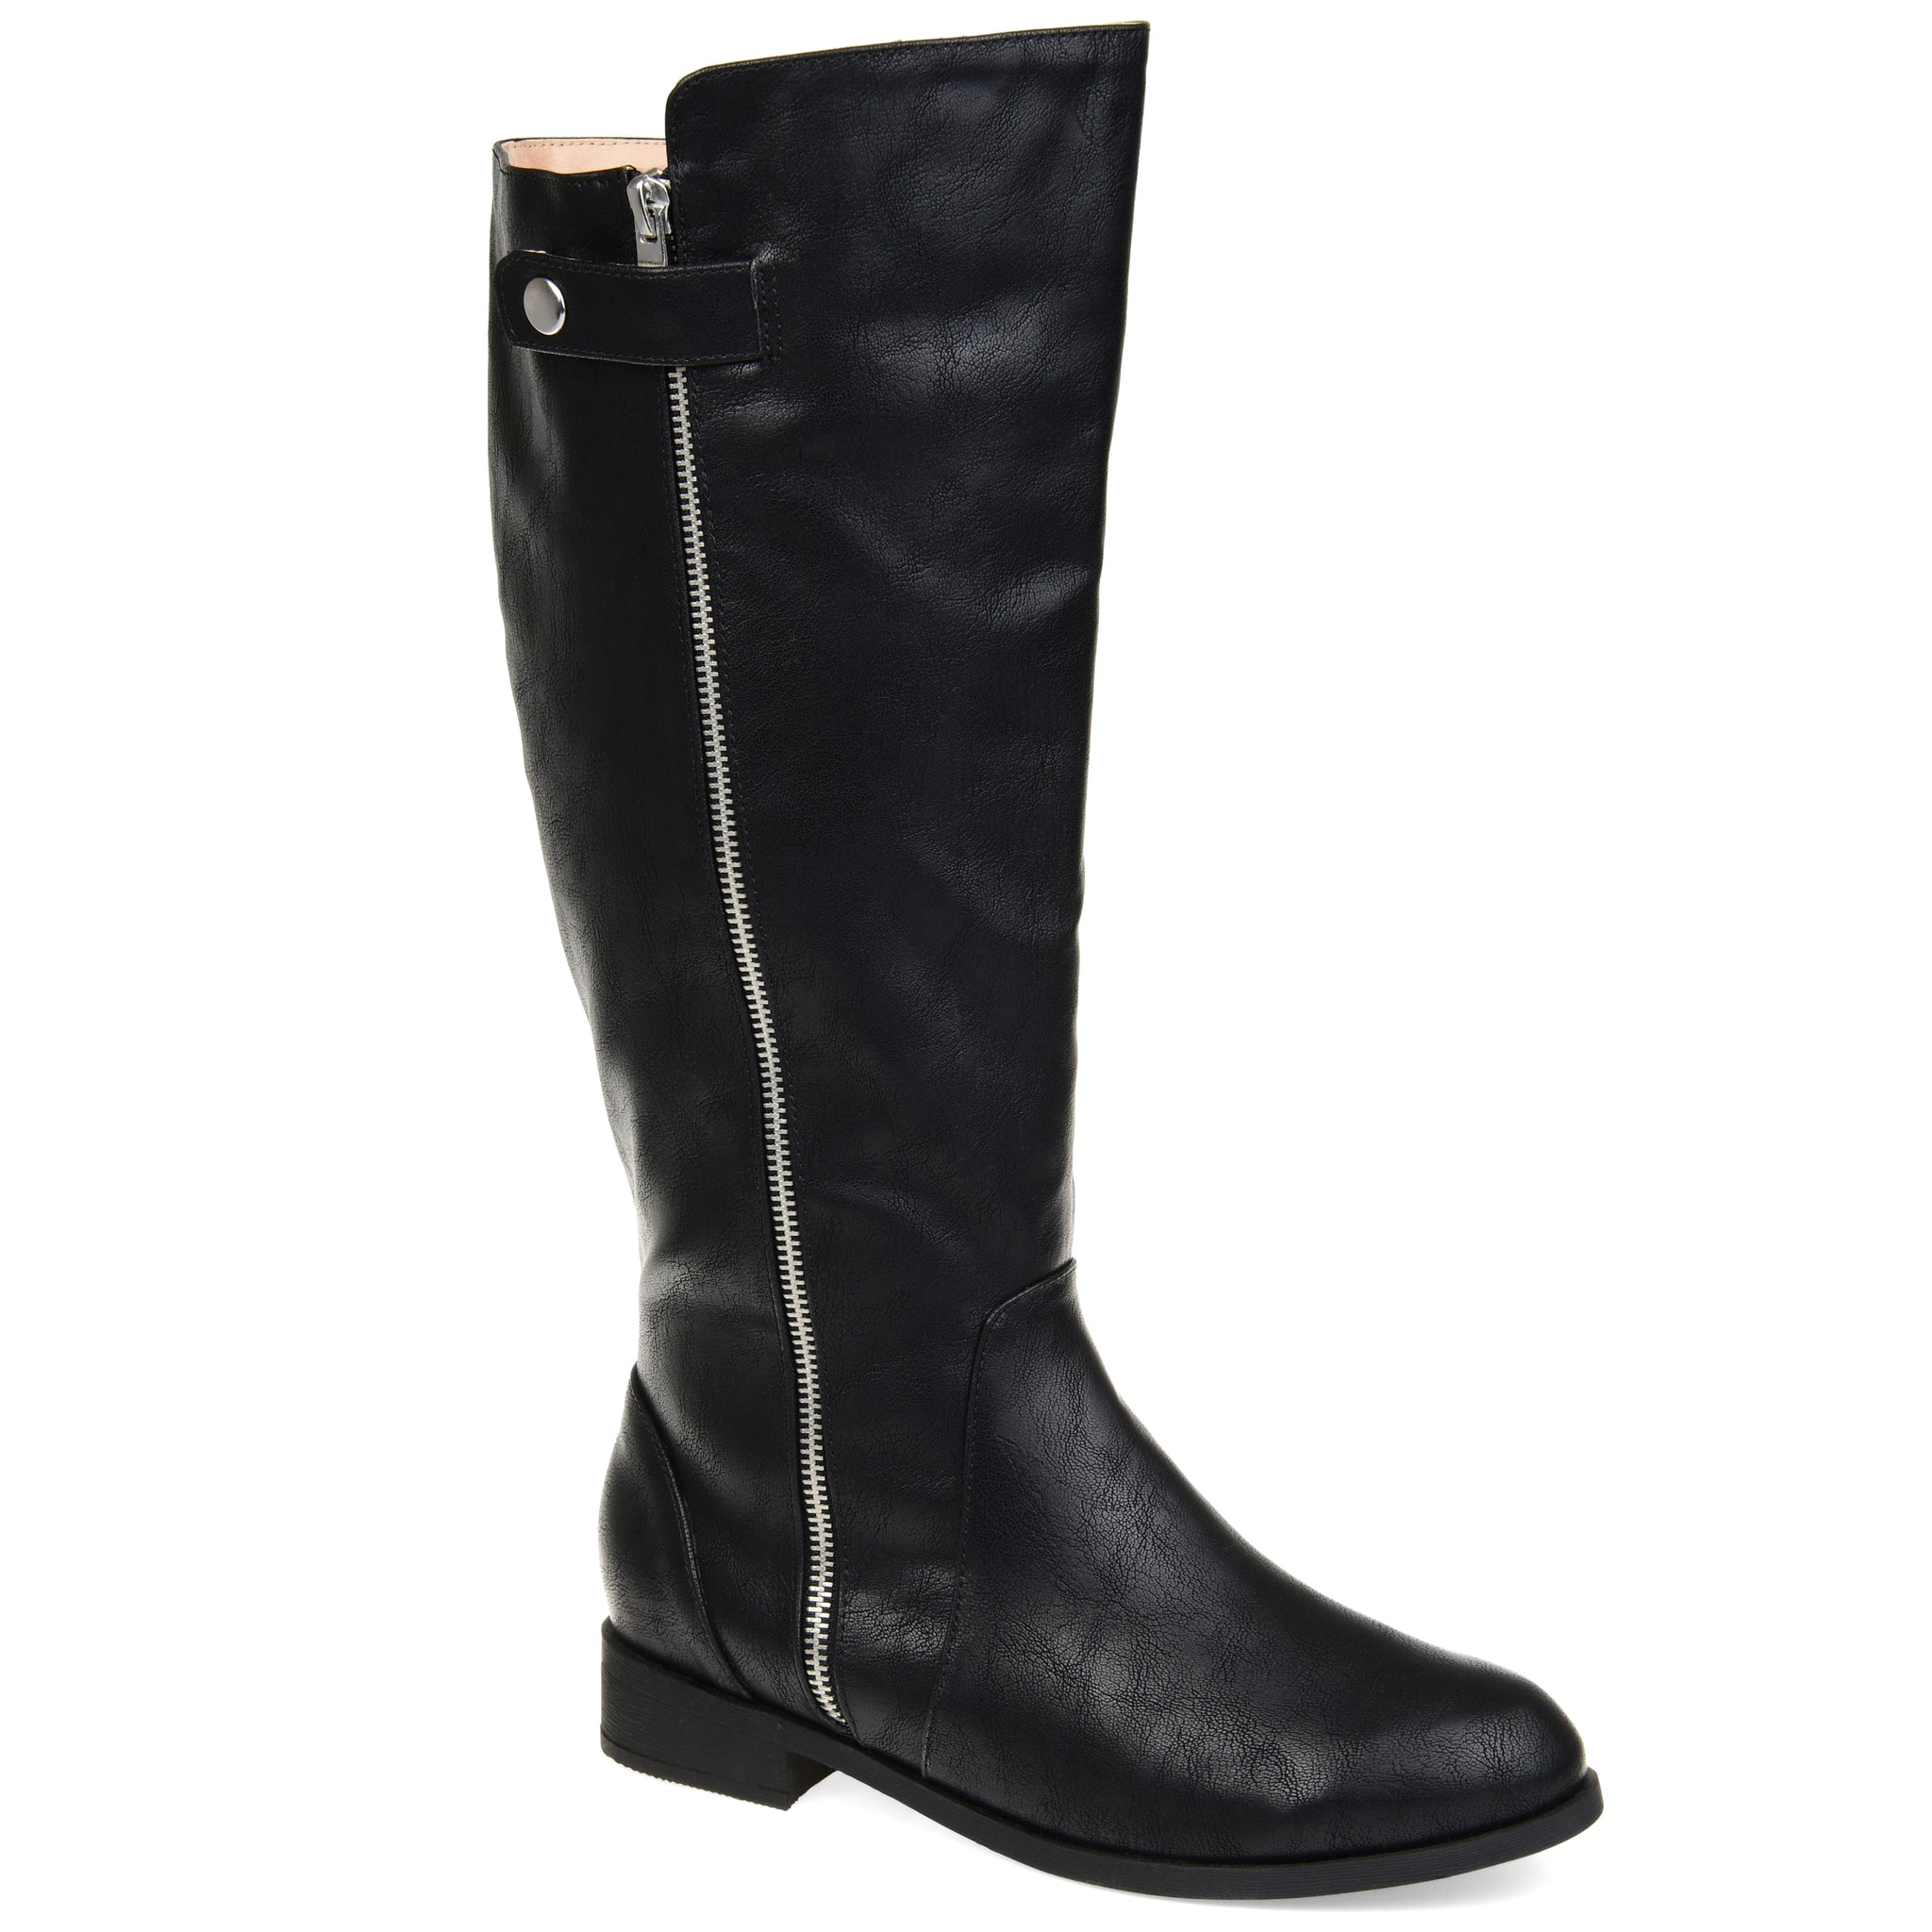 Silver Snap Zipper Riding Boot Extra Wide Calf